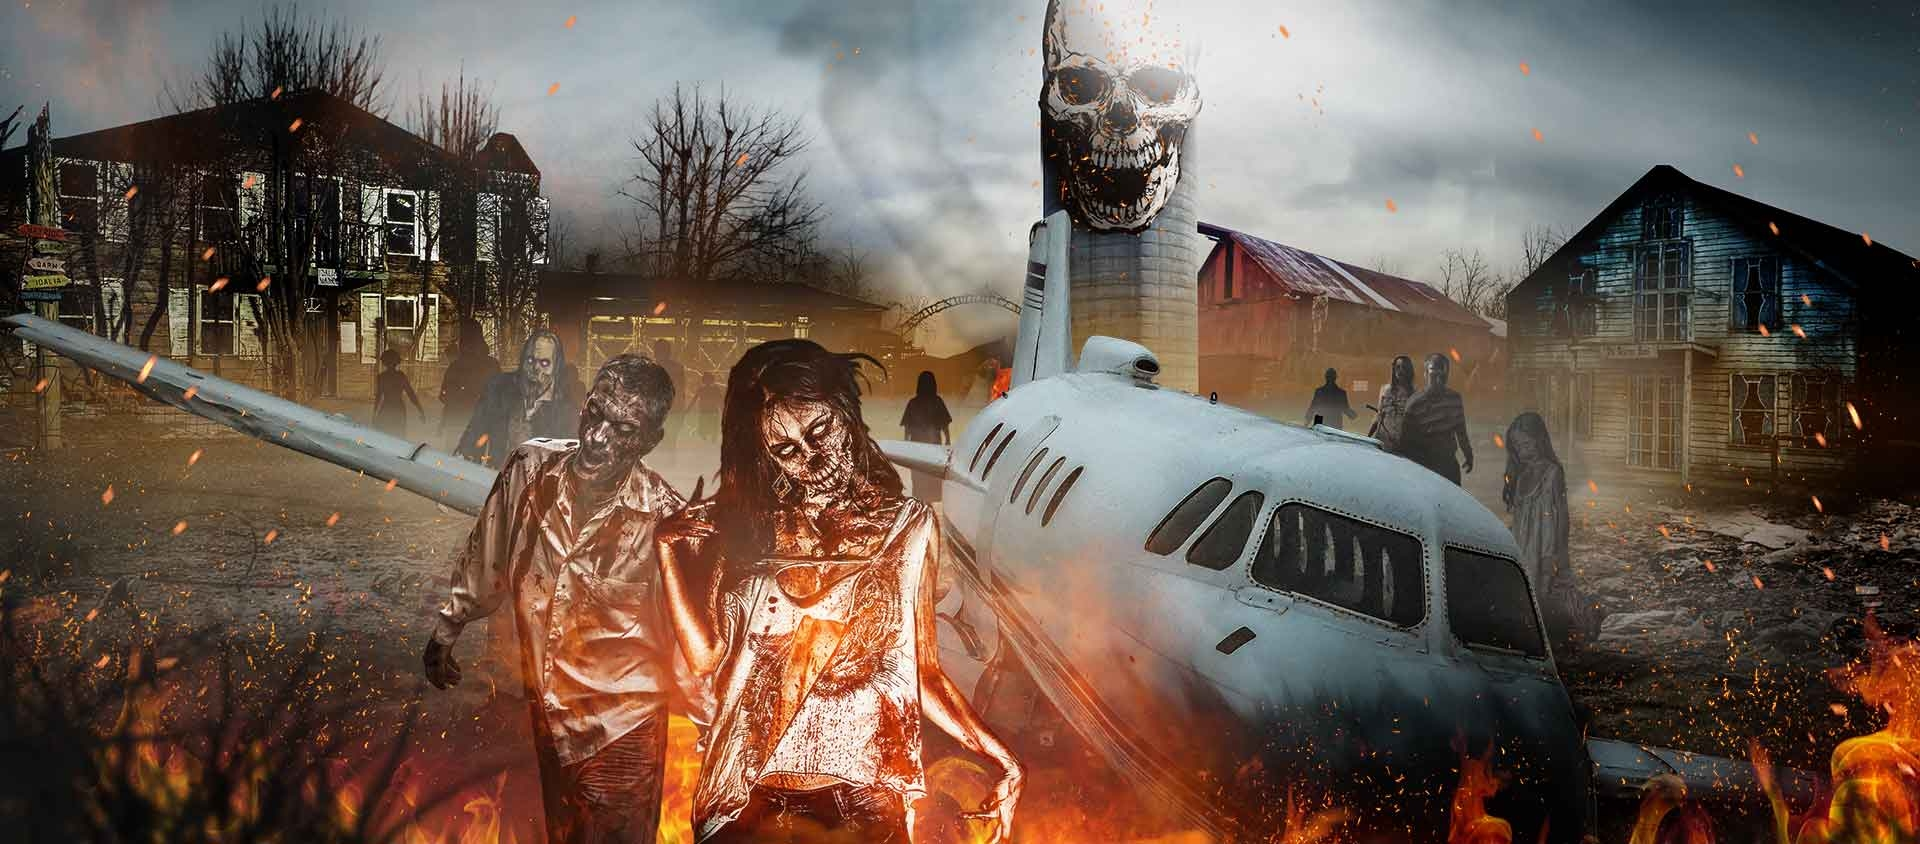 Delaware Haunted House - Frightland - Frightland